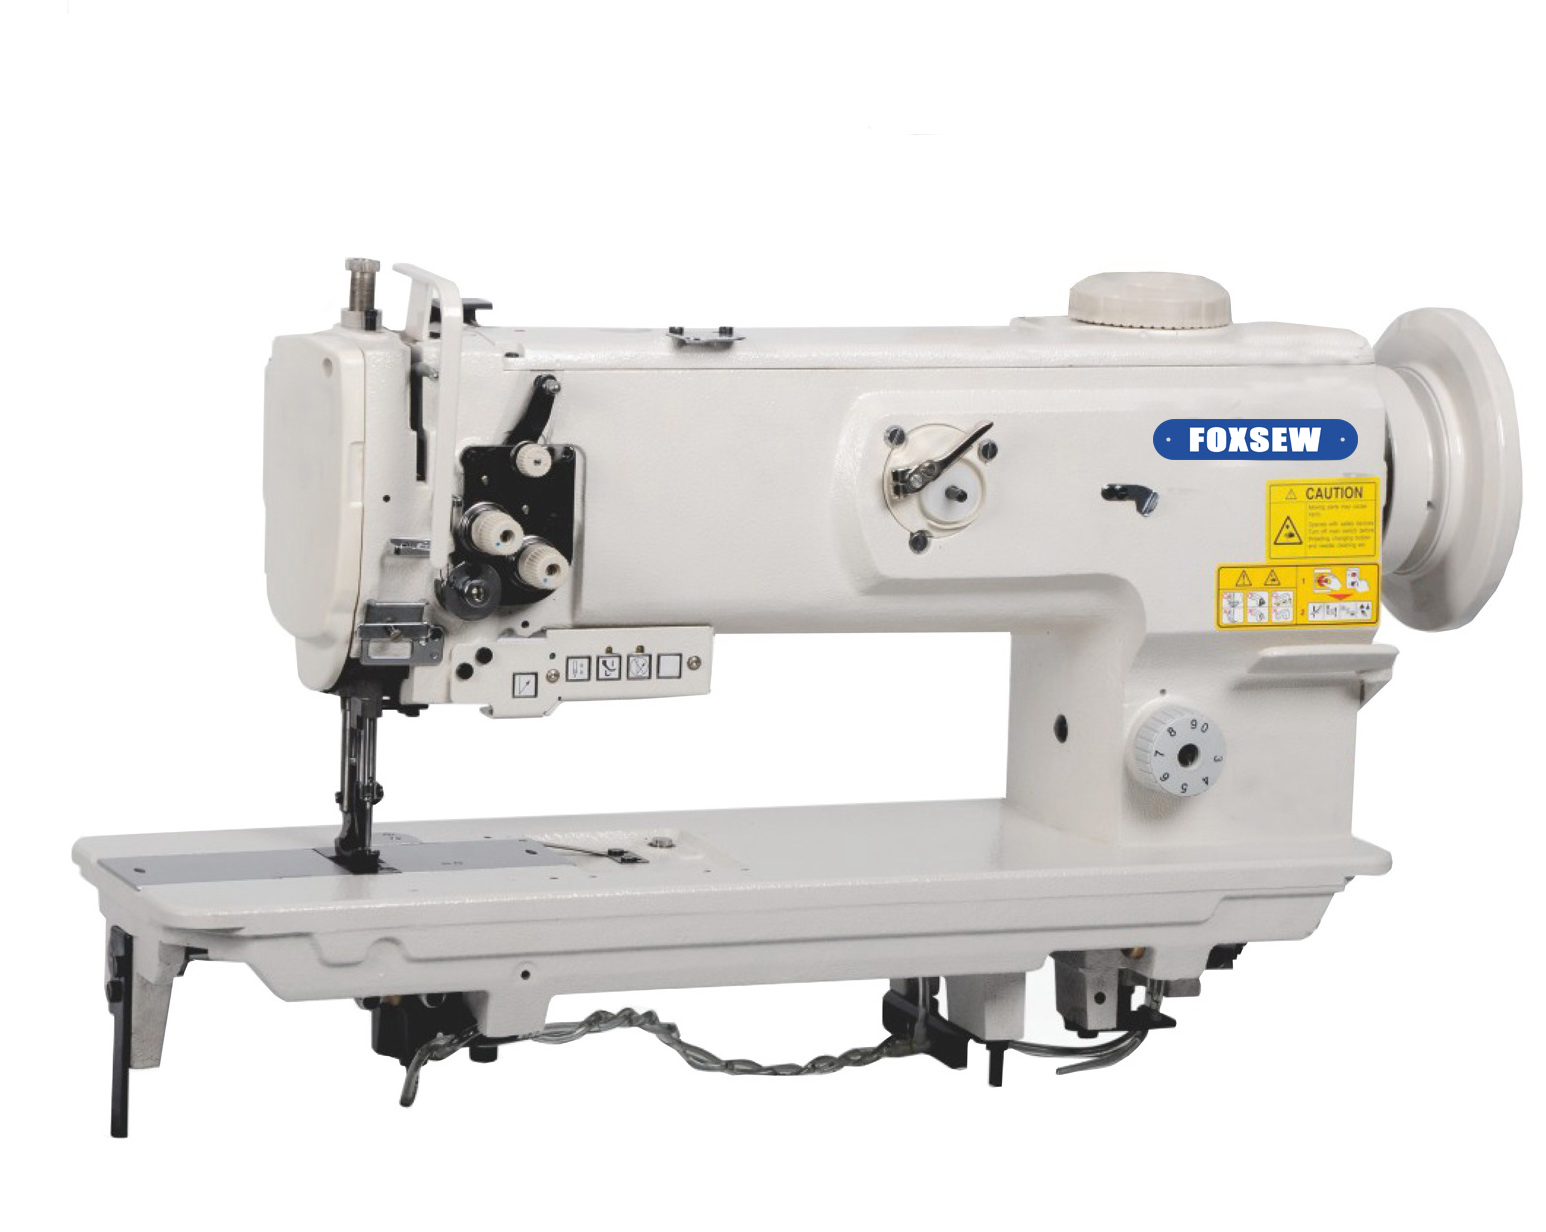 KD-1510N-L14 Single Needle Compound Feed Heavy Duty Lockstitch Machine